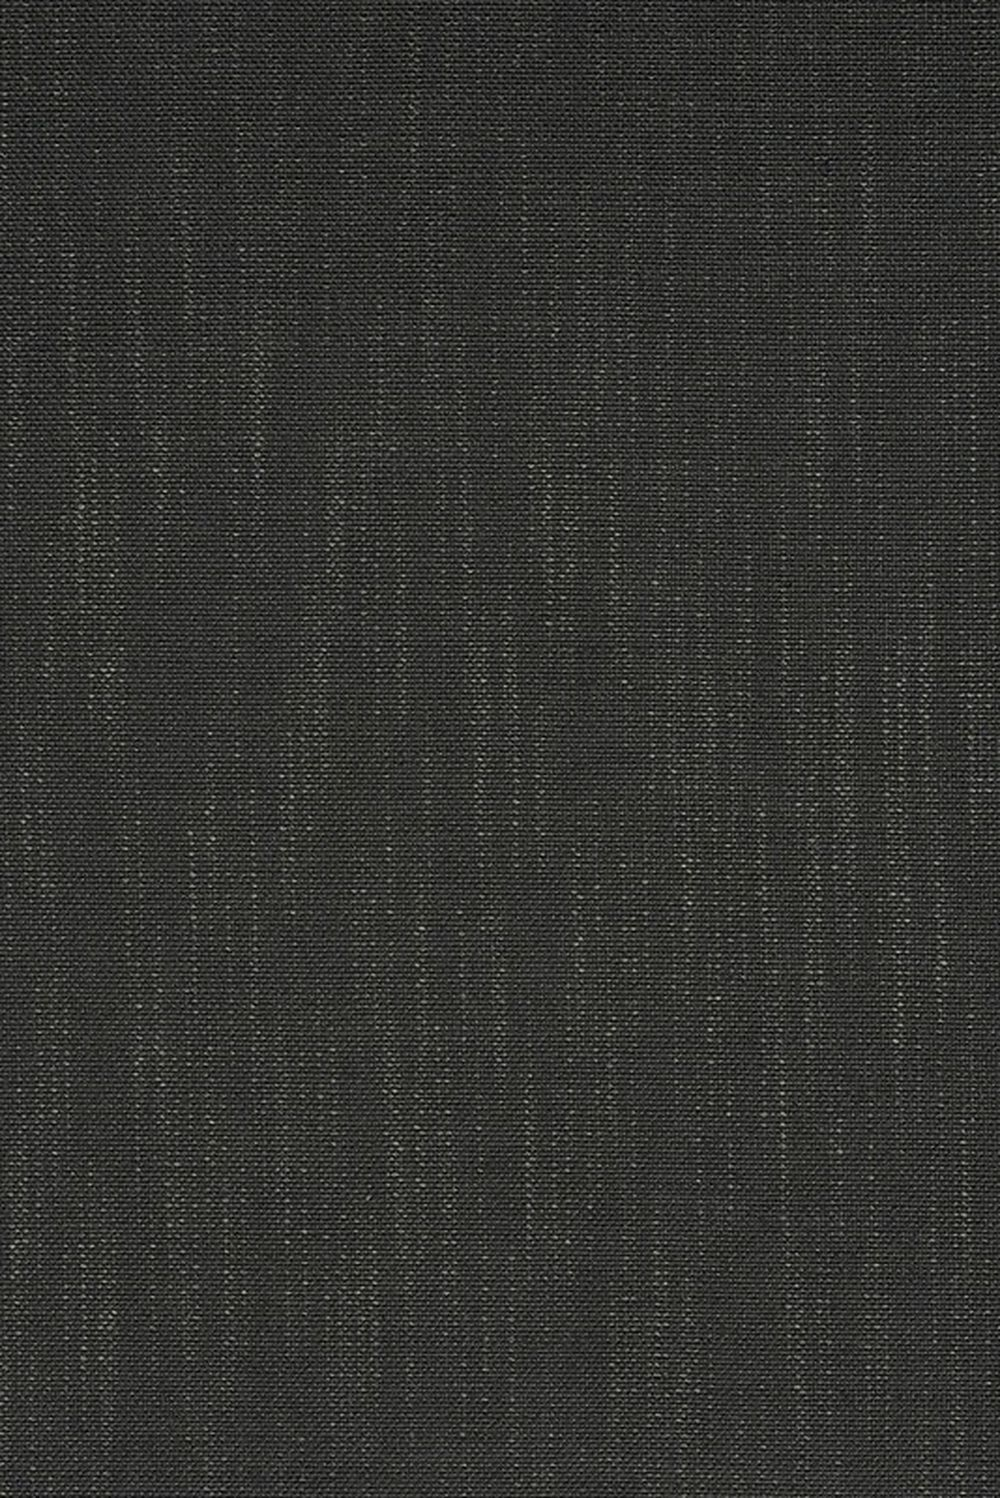 Photo of the fabric Allium Charcoal swatch by Mokum. Use for Upholstery Heavy Duty, Accessory. Style of Plain, Texture